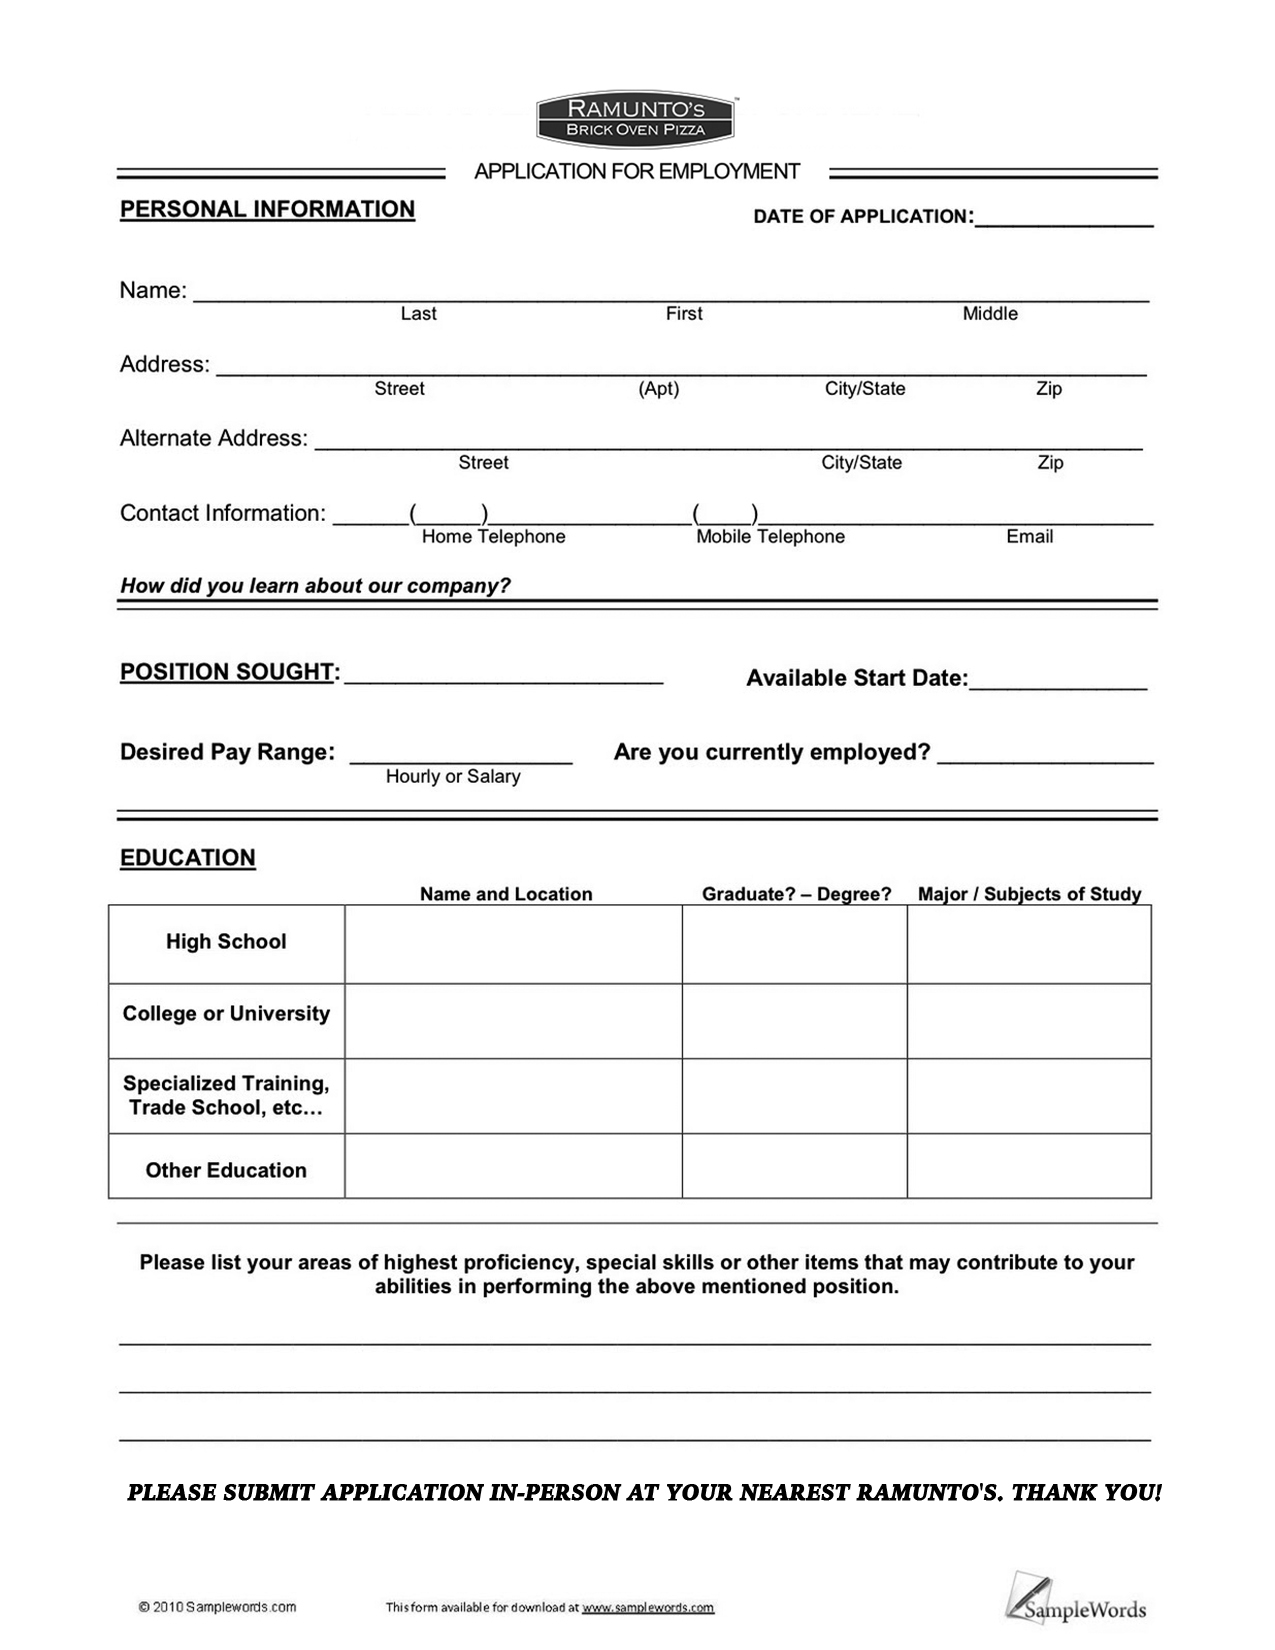 example of the application form